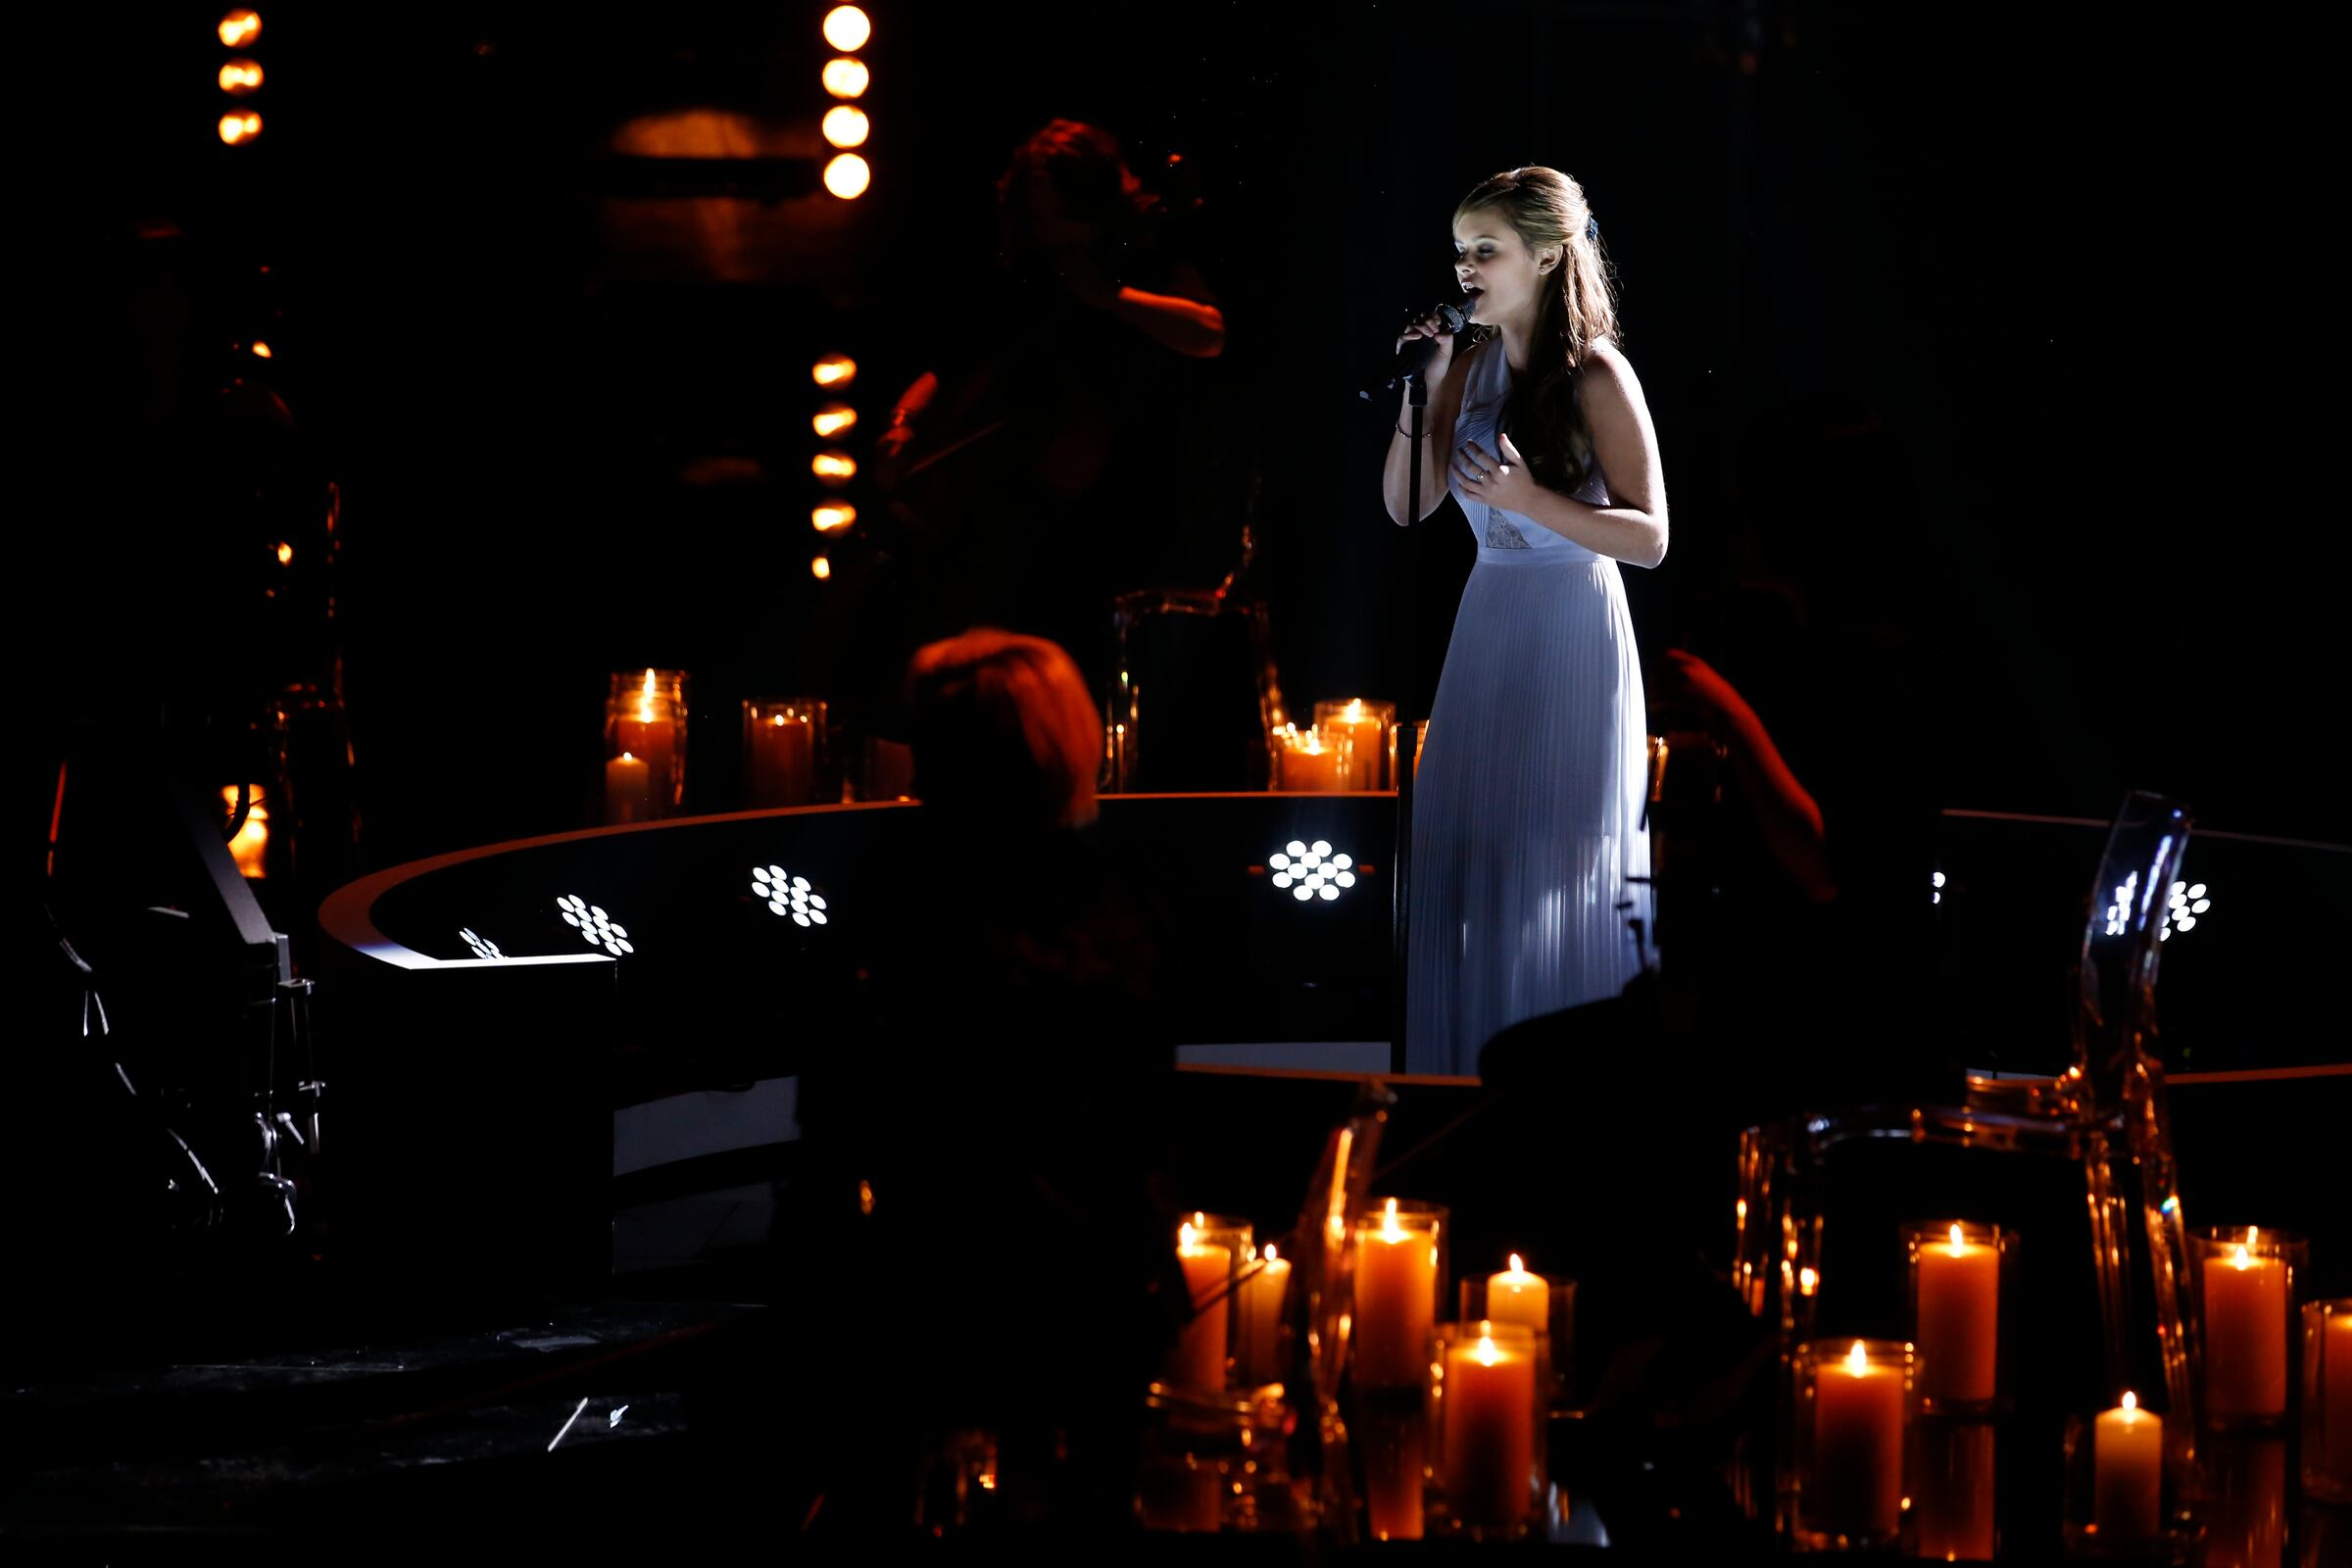 """Then it was on to the semifinals, where Jacquie, clad in an evening gown and shimmering in candlelight, gave a dramatic and powerful take on Sarah McLachlan's """"Angel,"""" punching her ticket to the finals."""